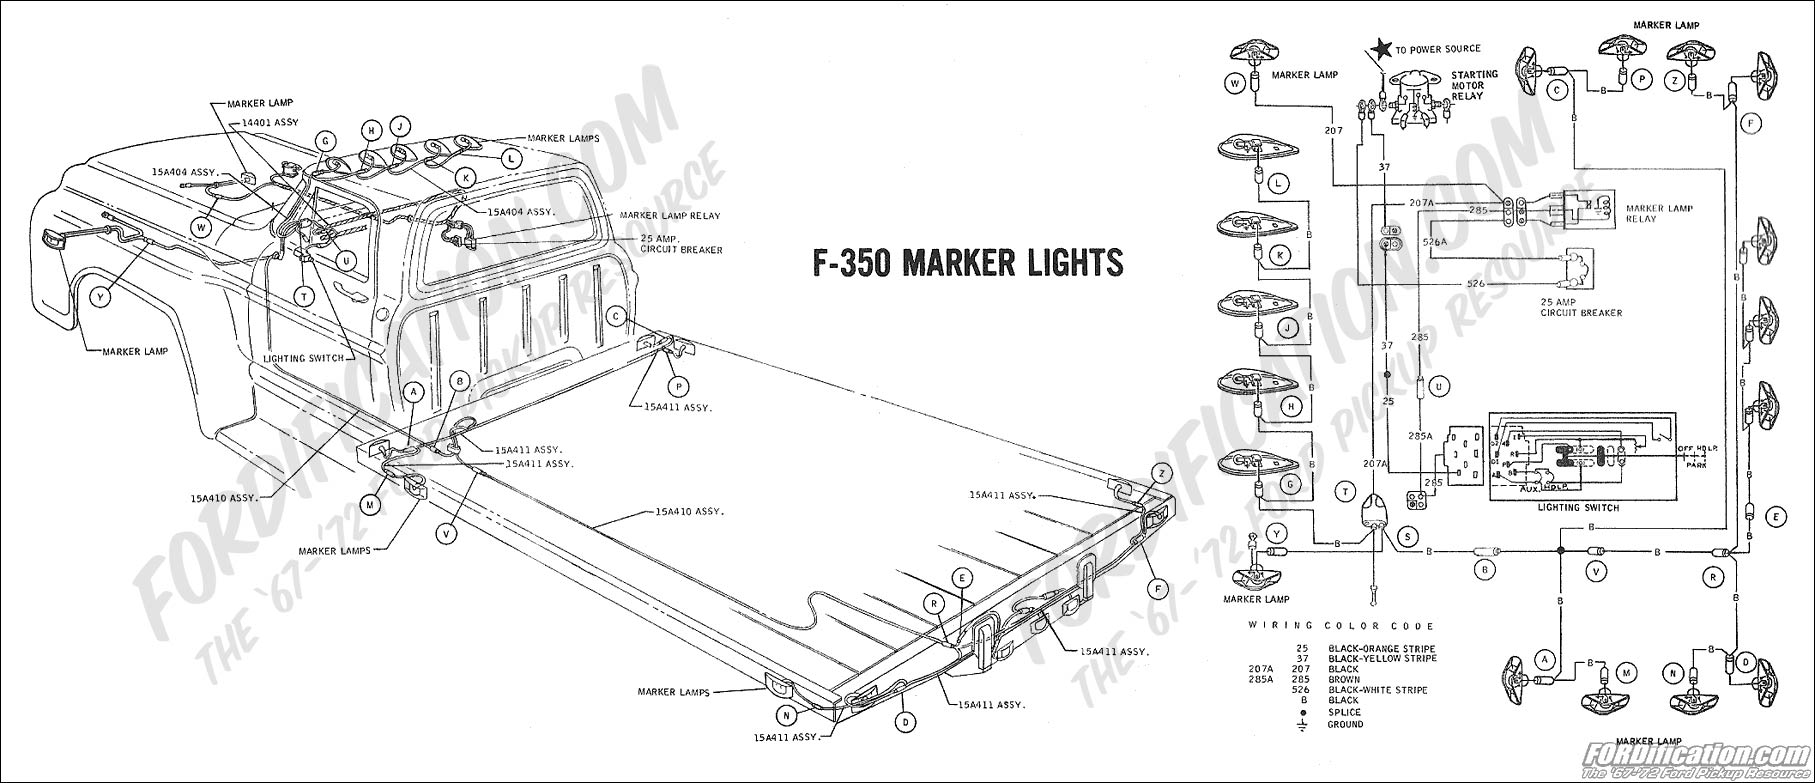 1980 Ford F 350 Drawing